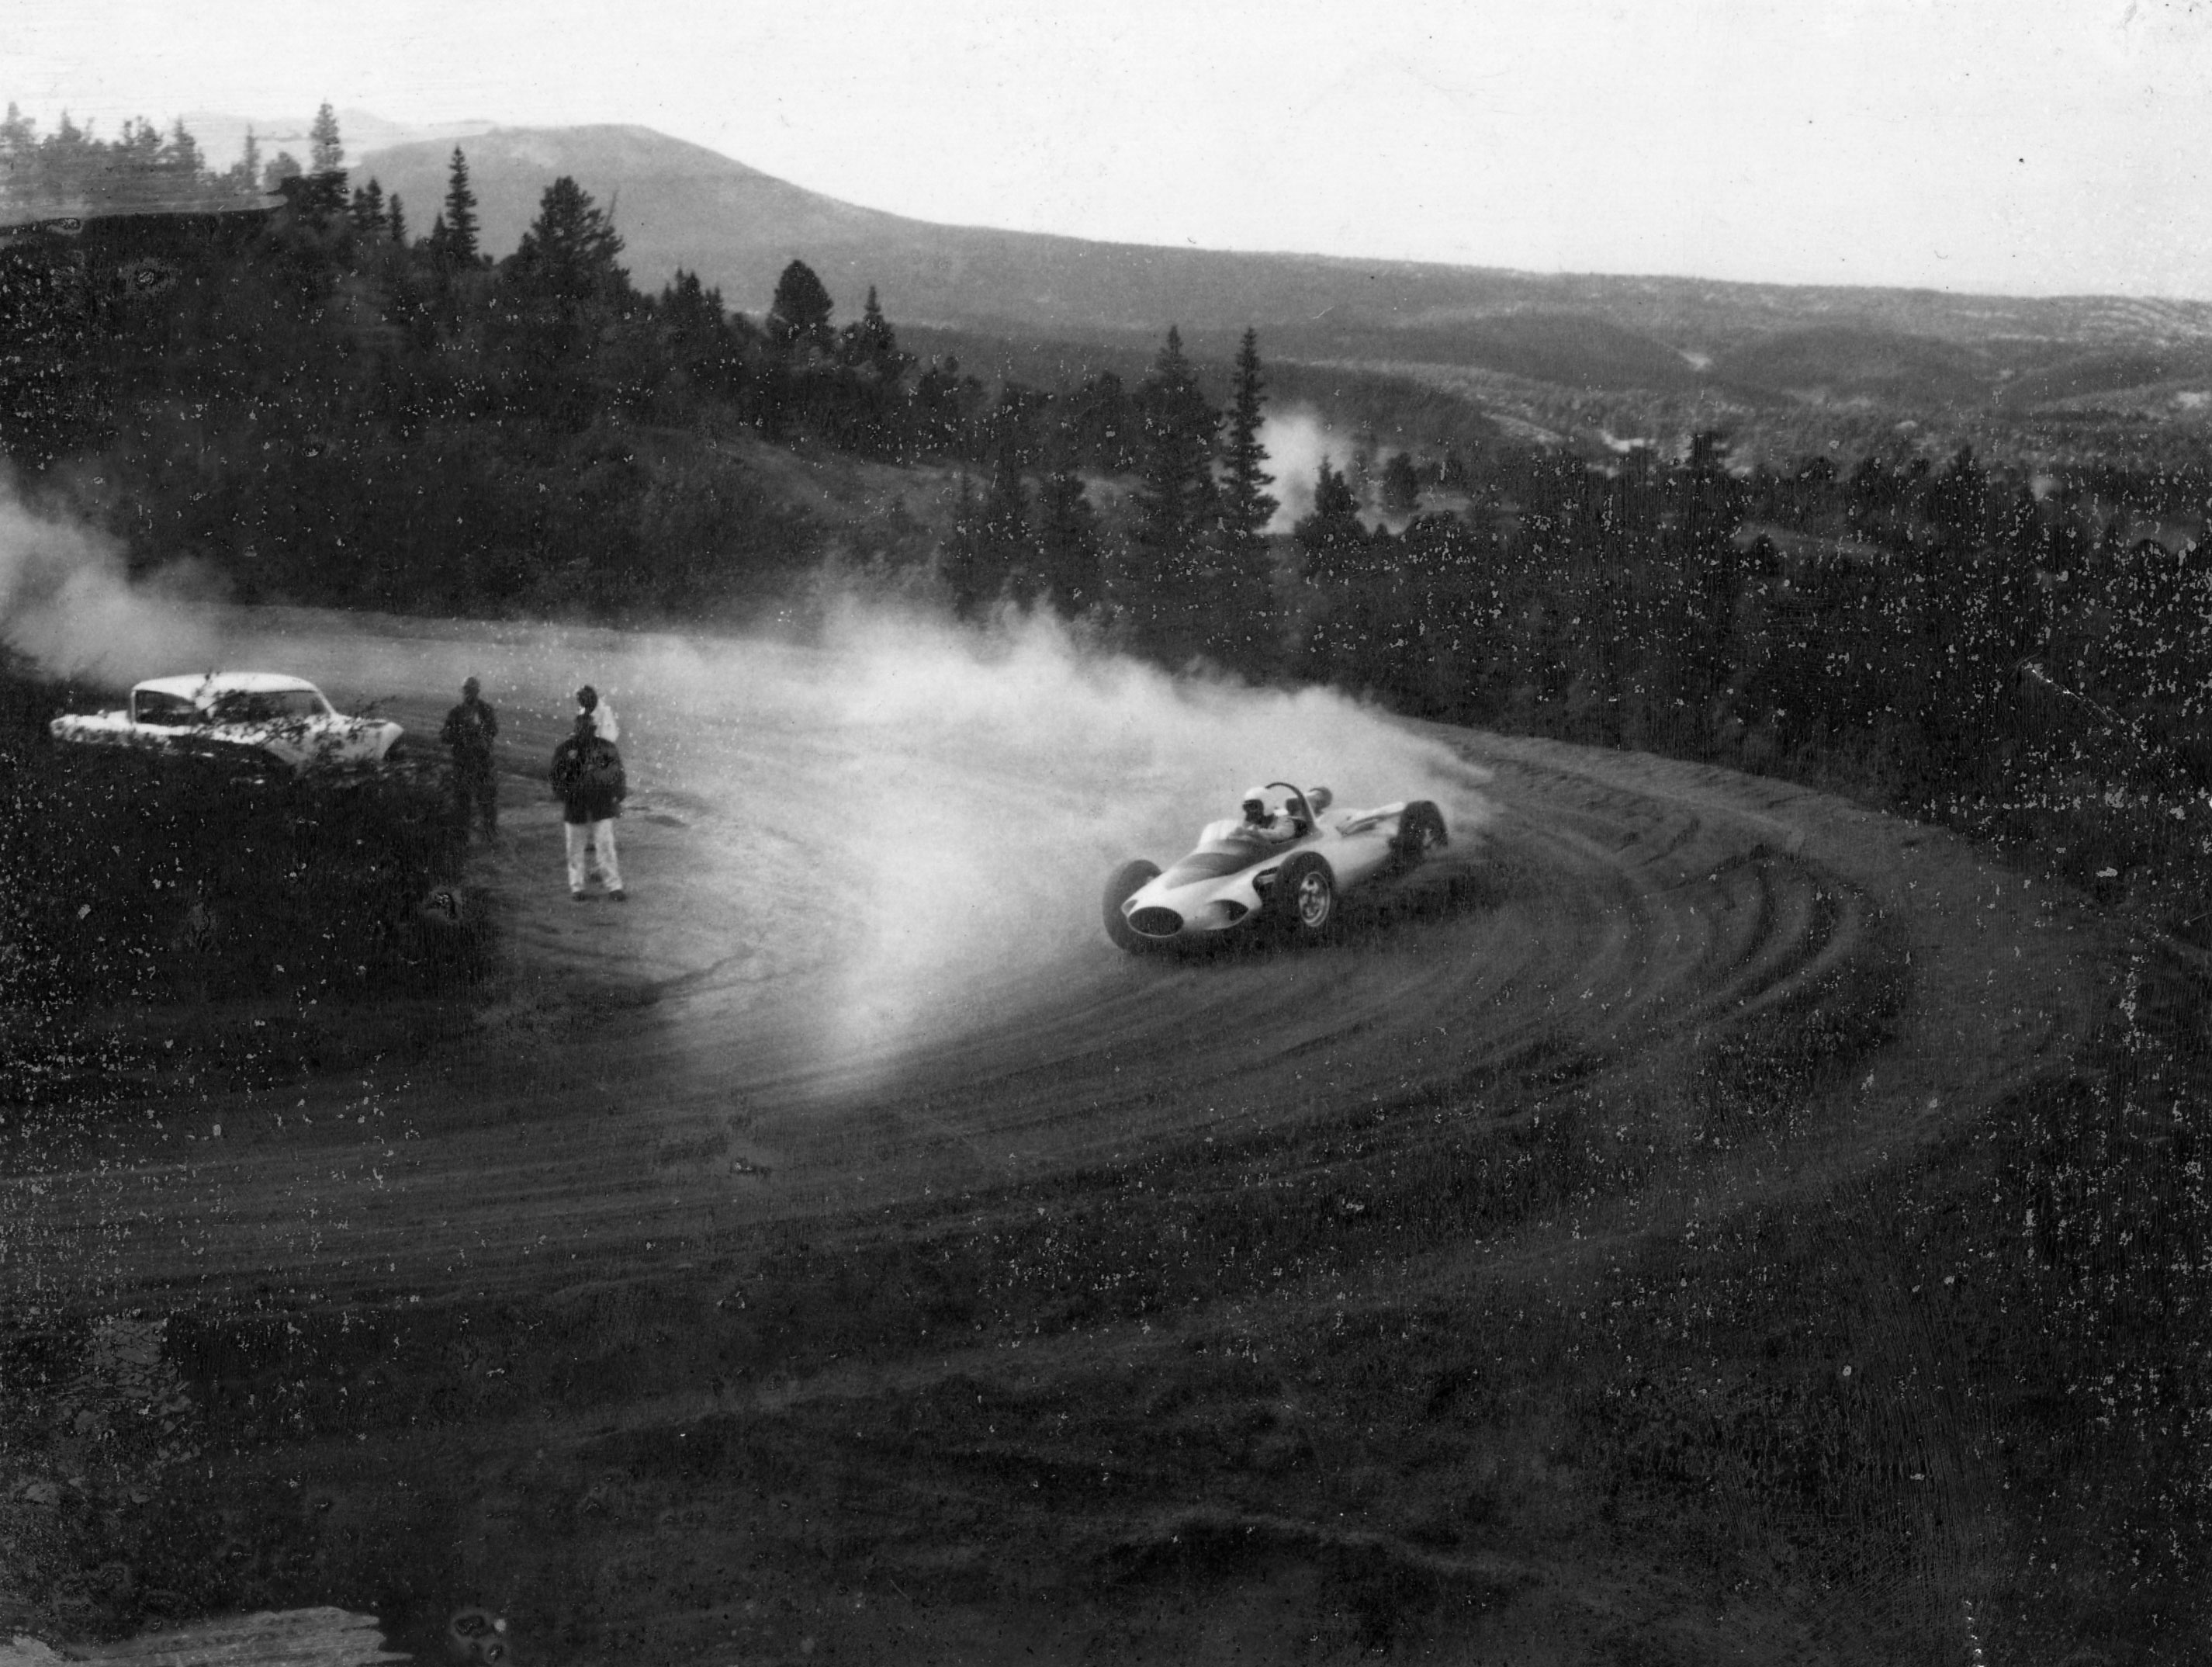 Arkus-Duntov demonstrated masterful drift skills during CERV's Pikes Peak runs.